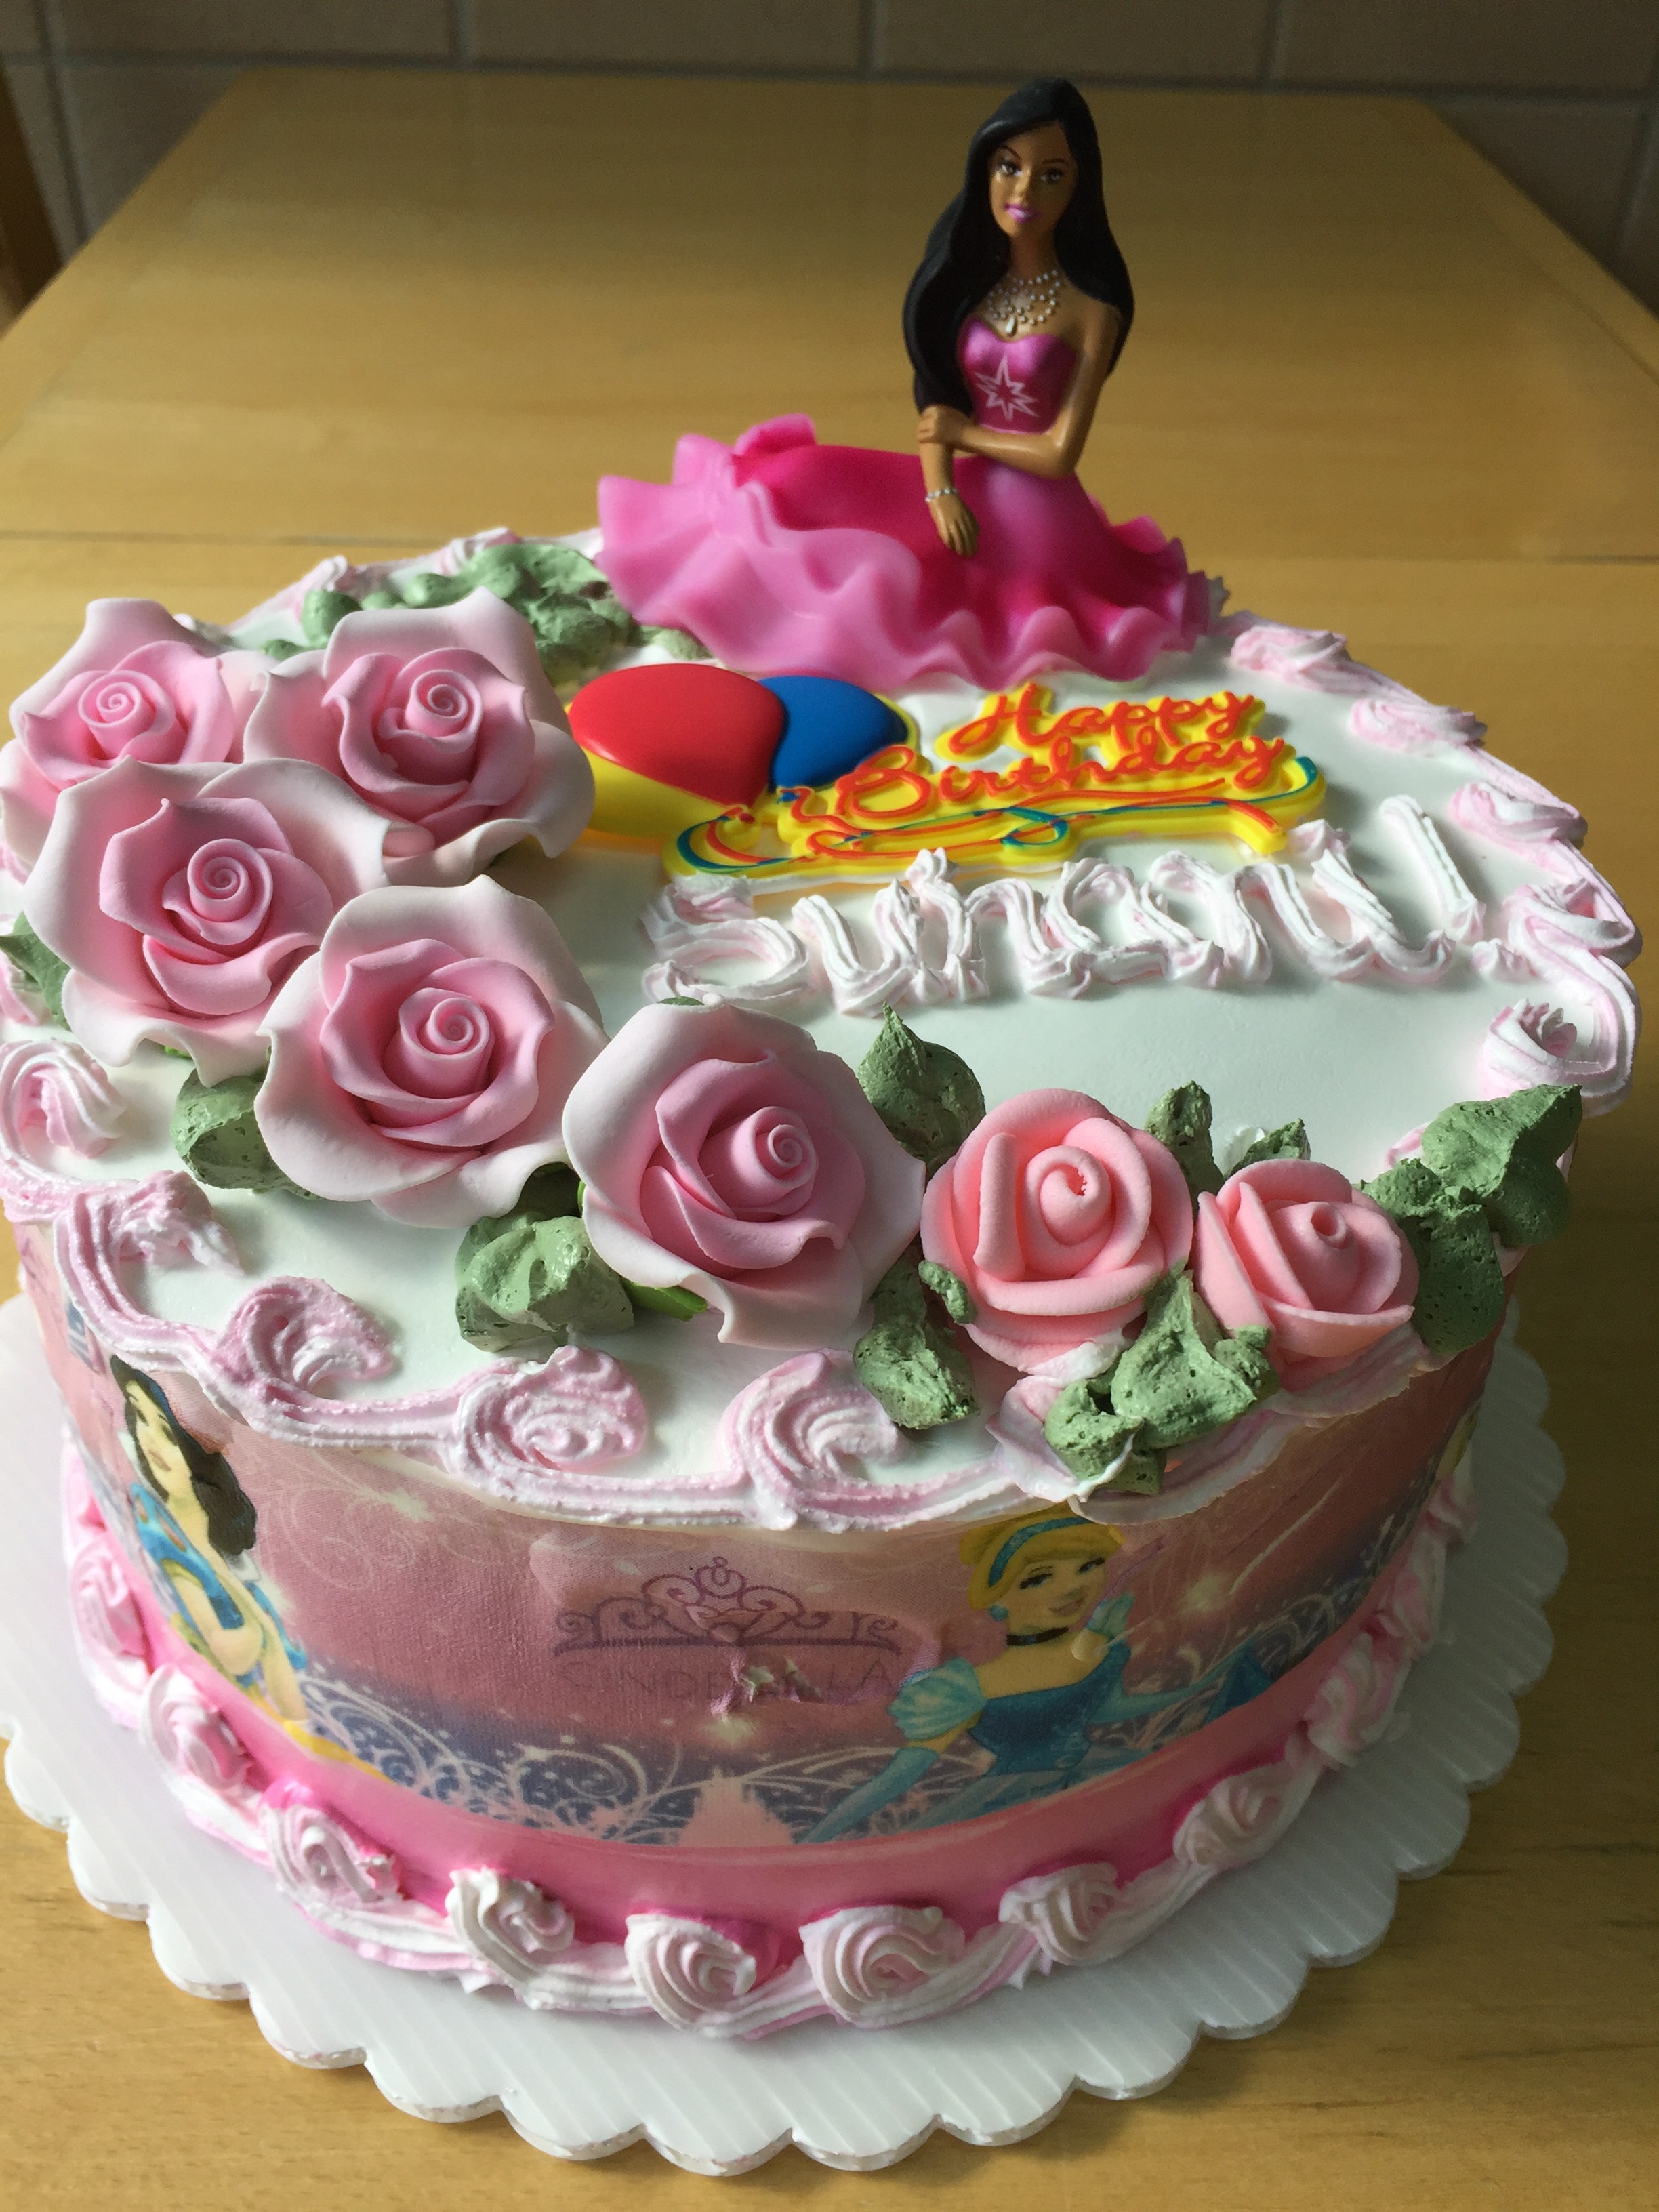 Admirable Princess Birthday Cake September 2017 Wild Berries Bakery And Cafe Funny Birthday Cards Online Alyptdamsfinfo